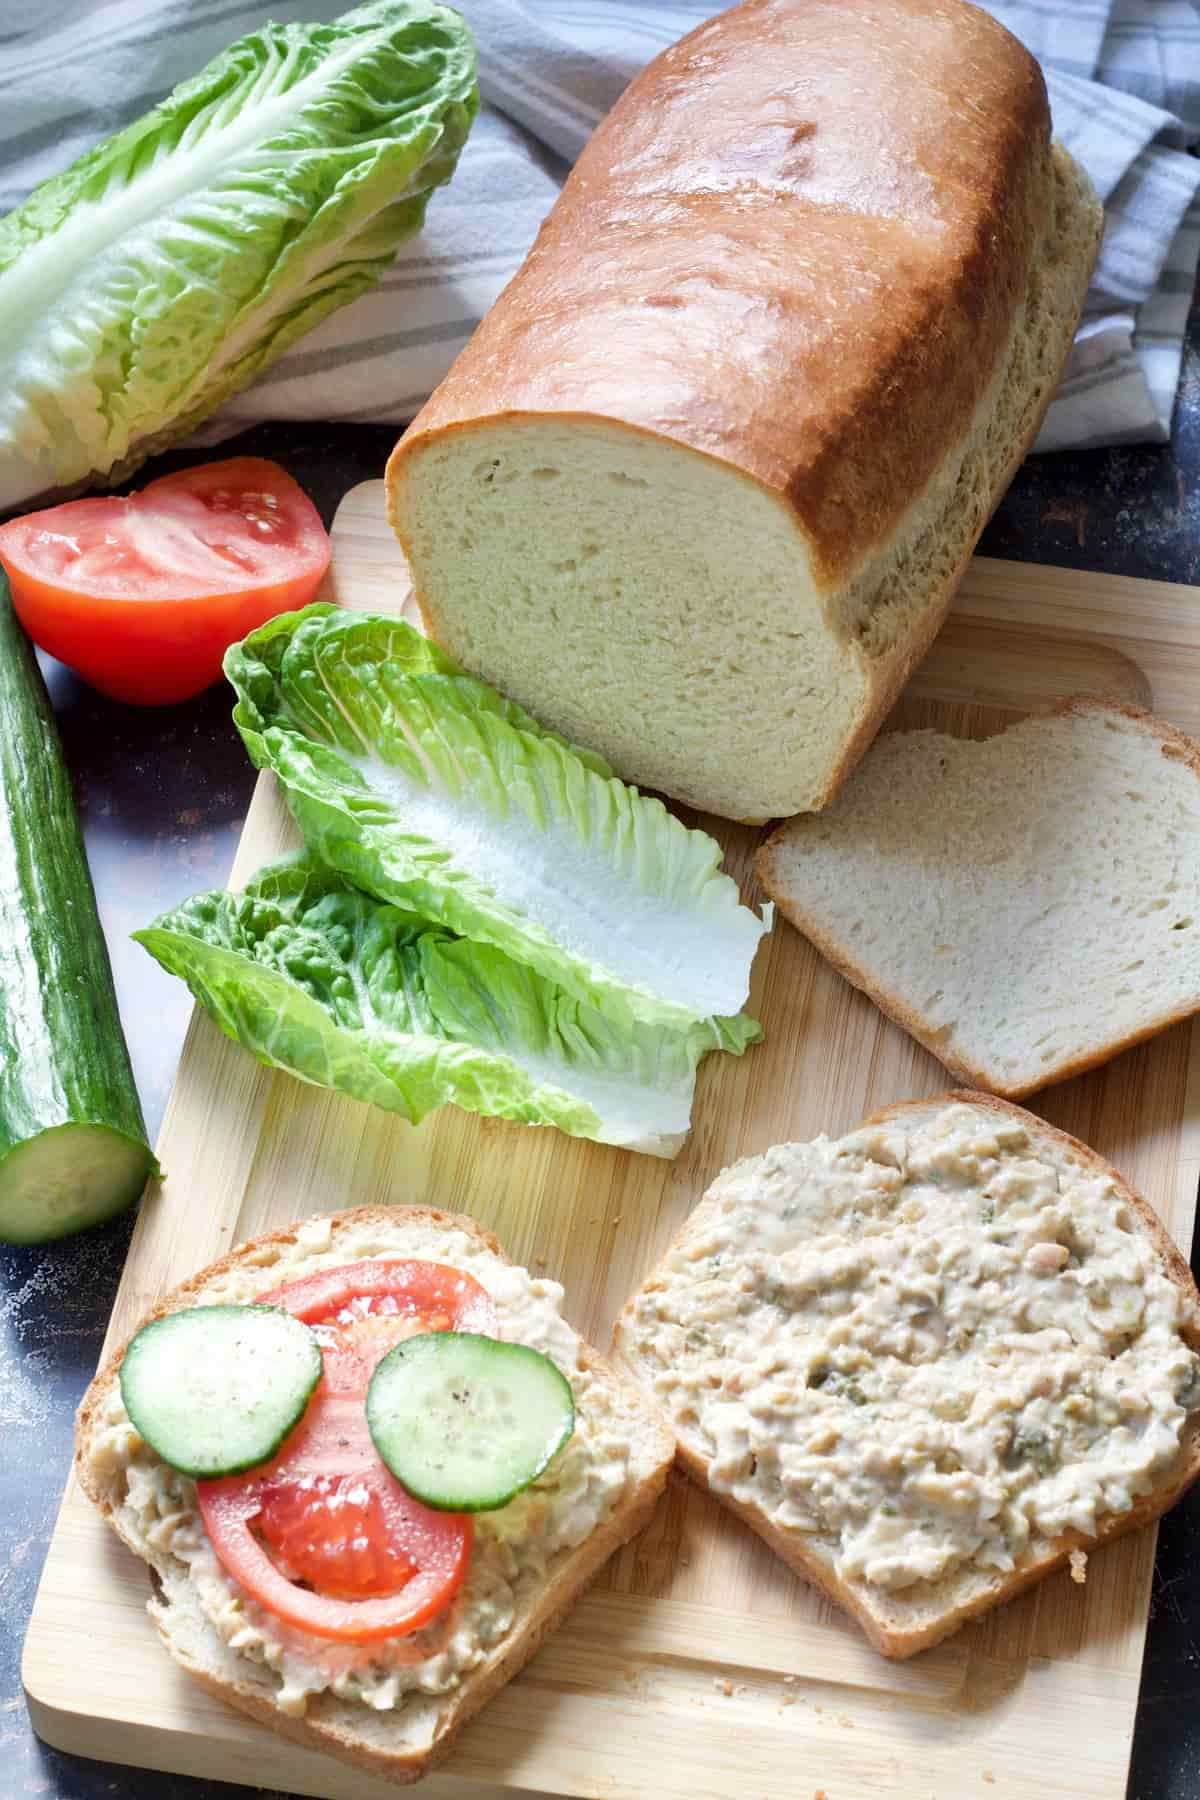 Sandwich in the making with lettuce & bread loaf on a board.